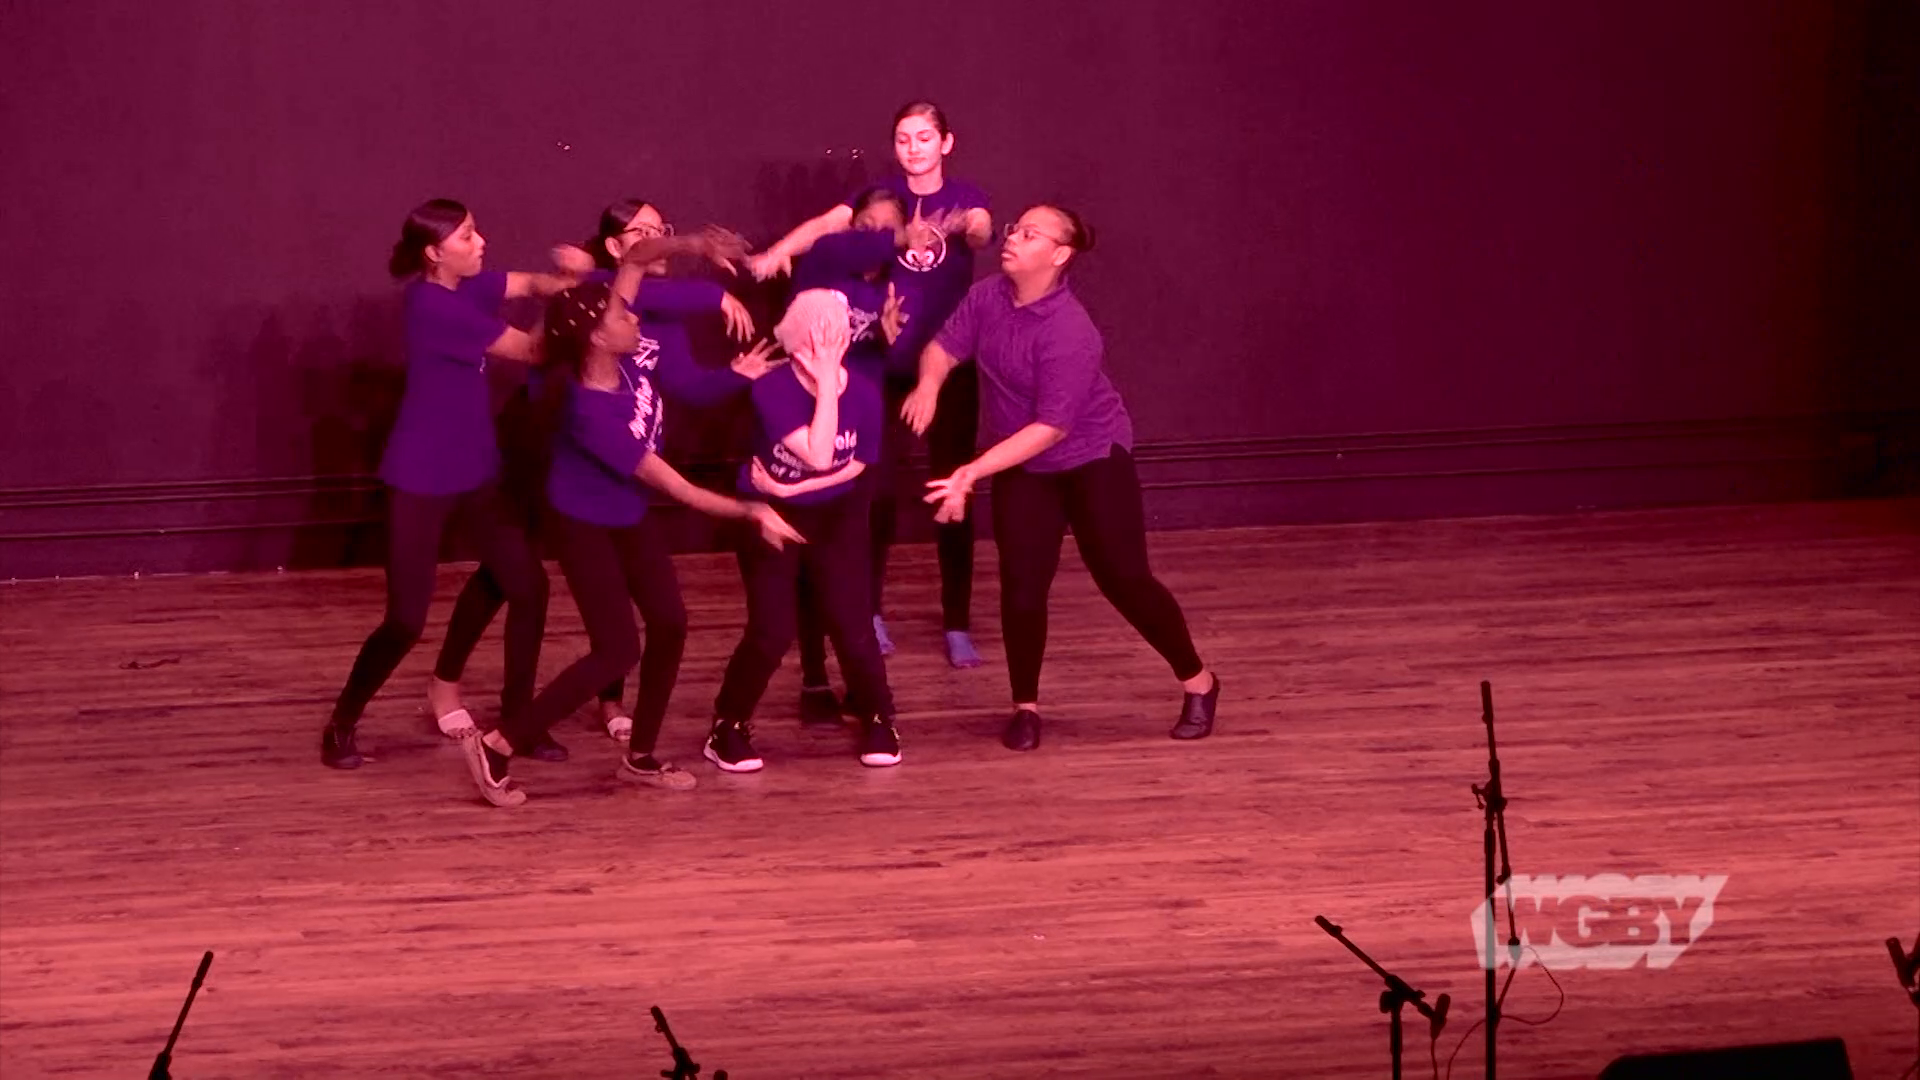 Springfield Conservatory of the Arts, a magnet school in Springfield, MA, combines arts and academics, setting students up for success on and off stage.